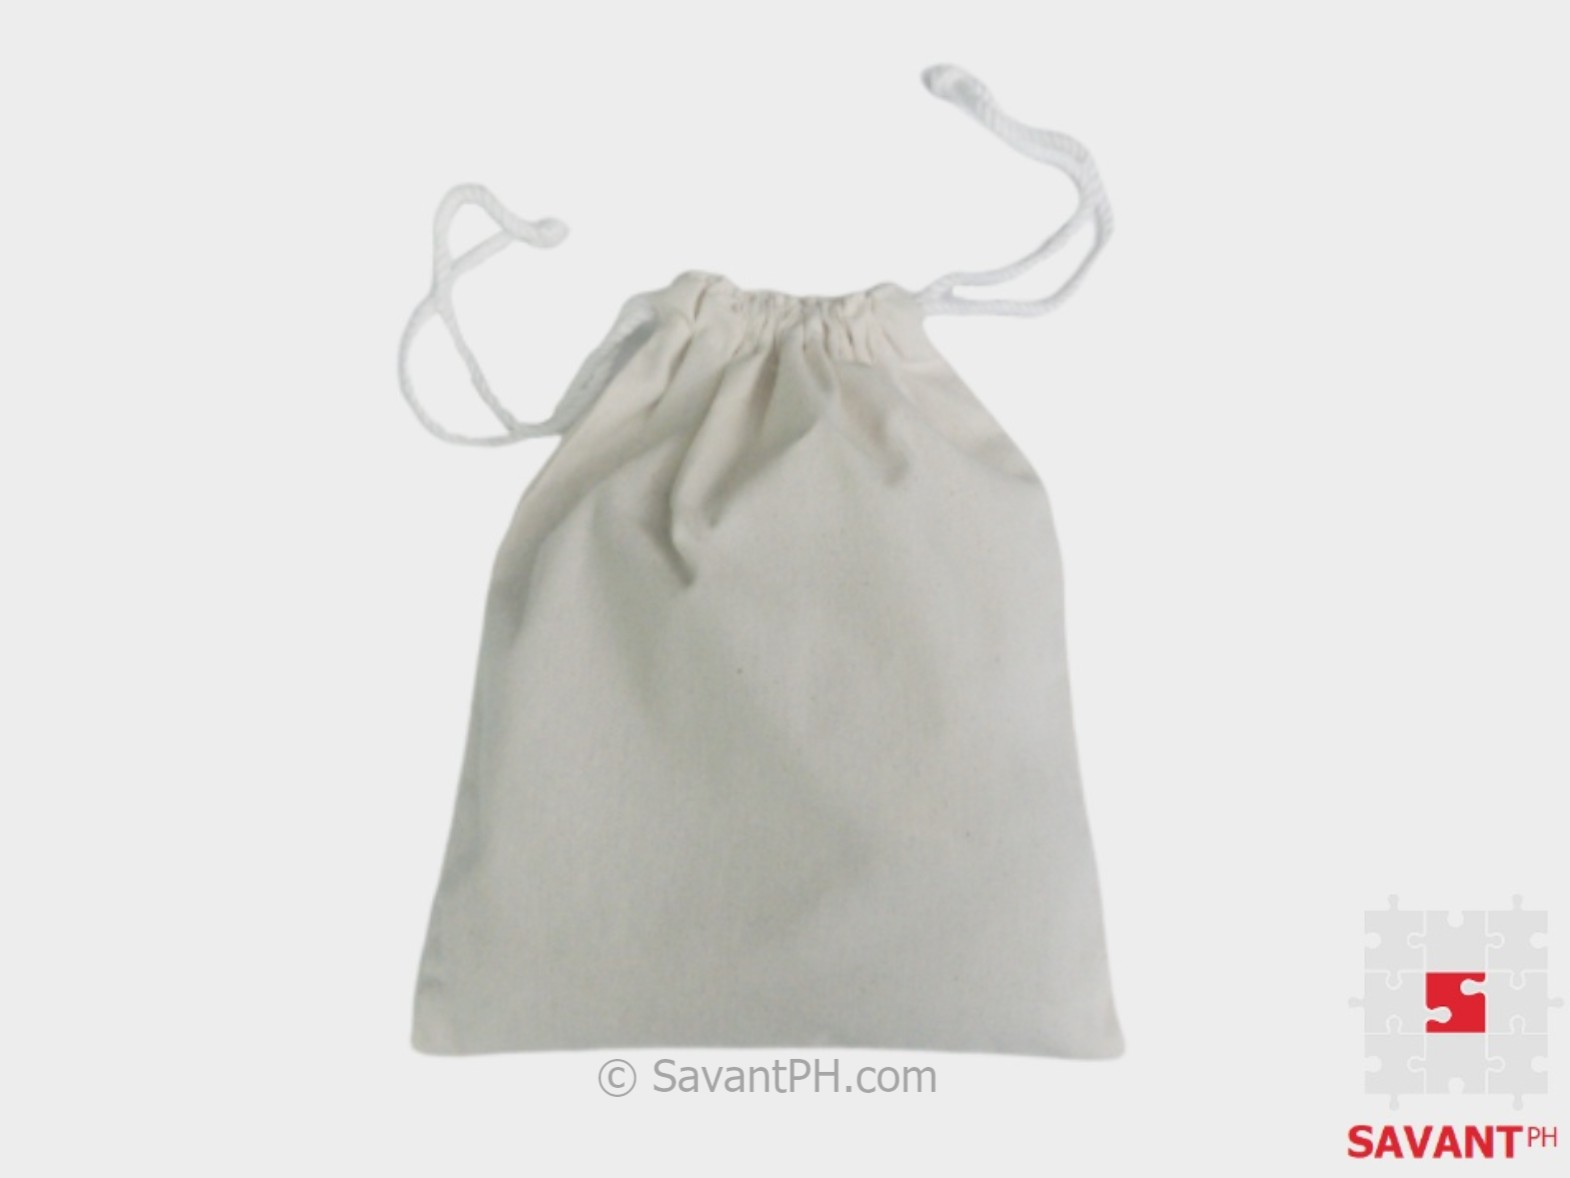 https://www.savantph.com/2019/08/plain-canvas-giveaway-pouch.html